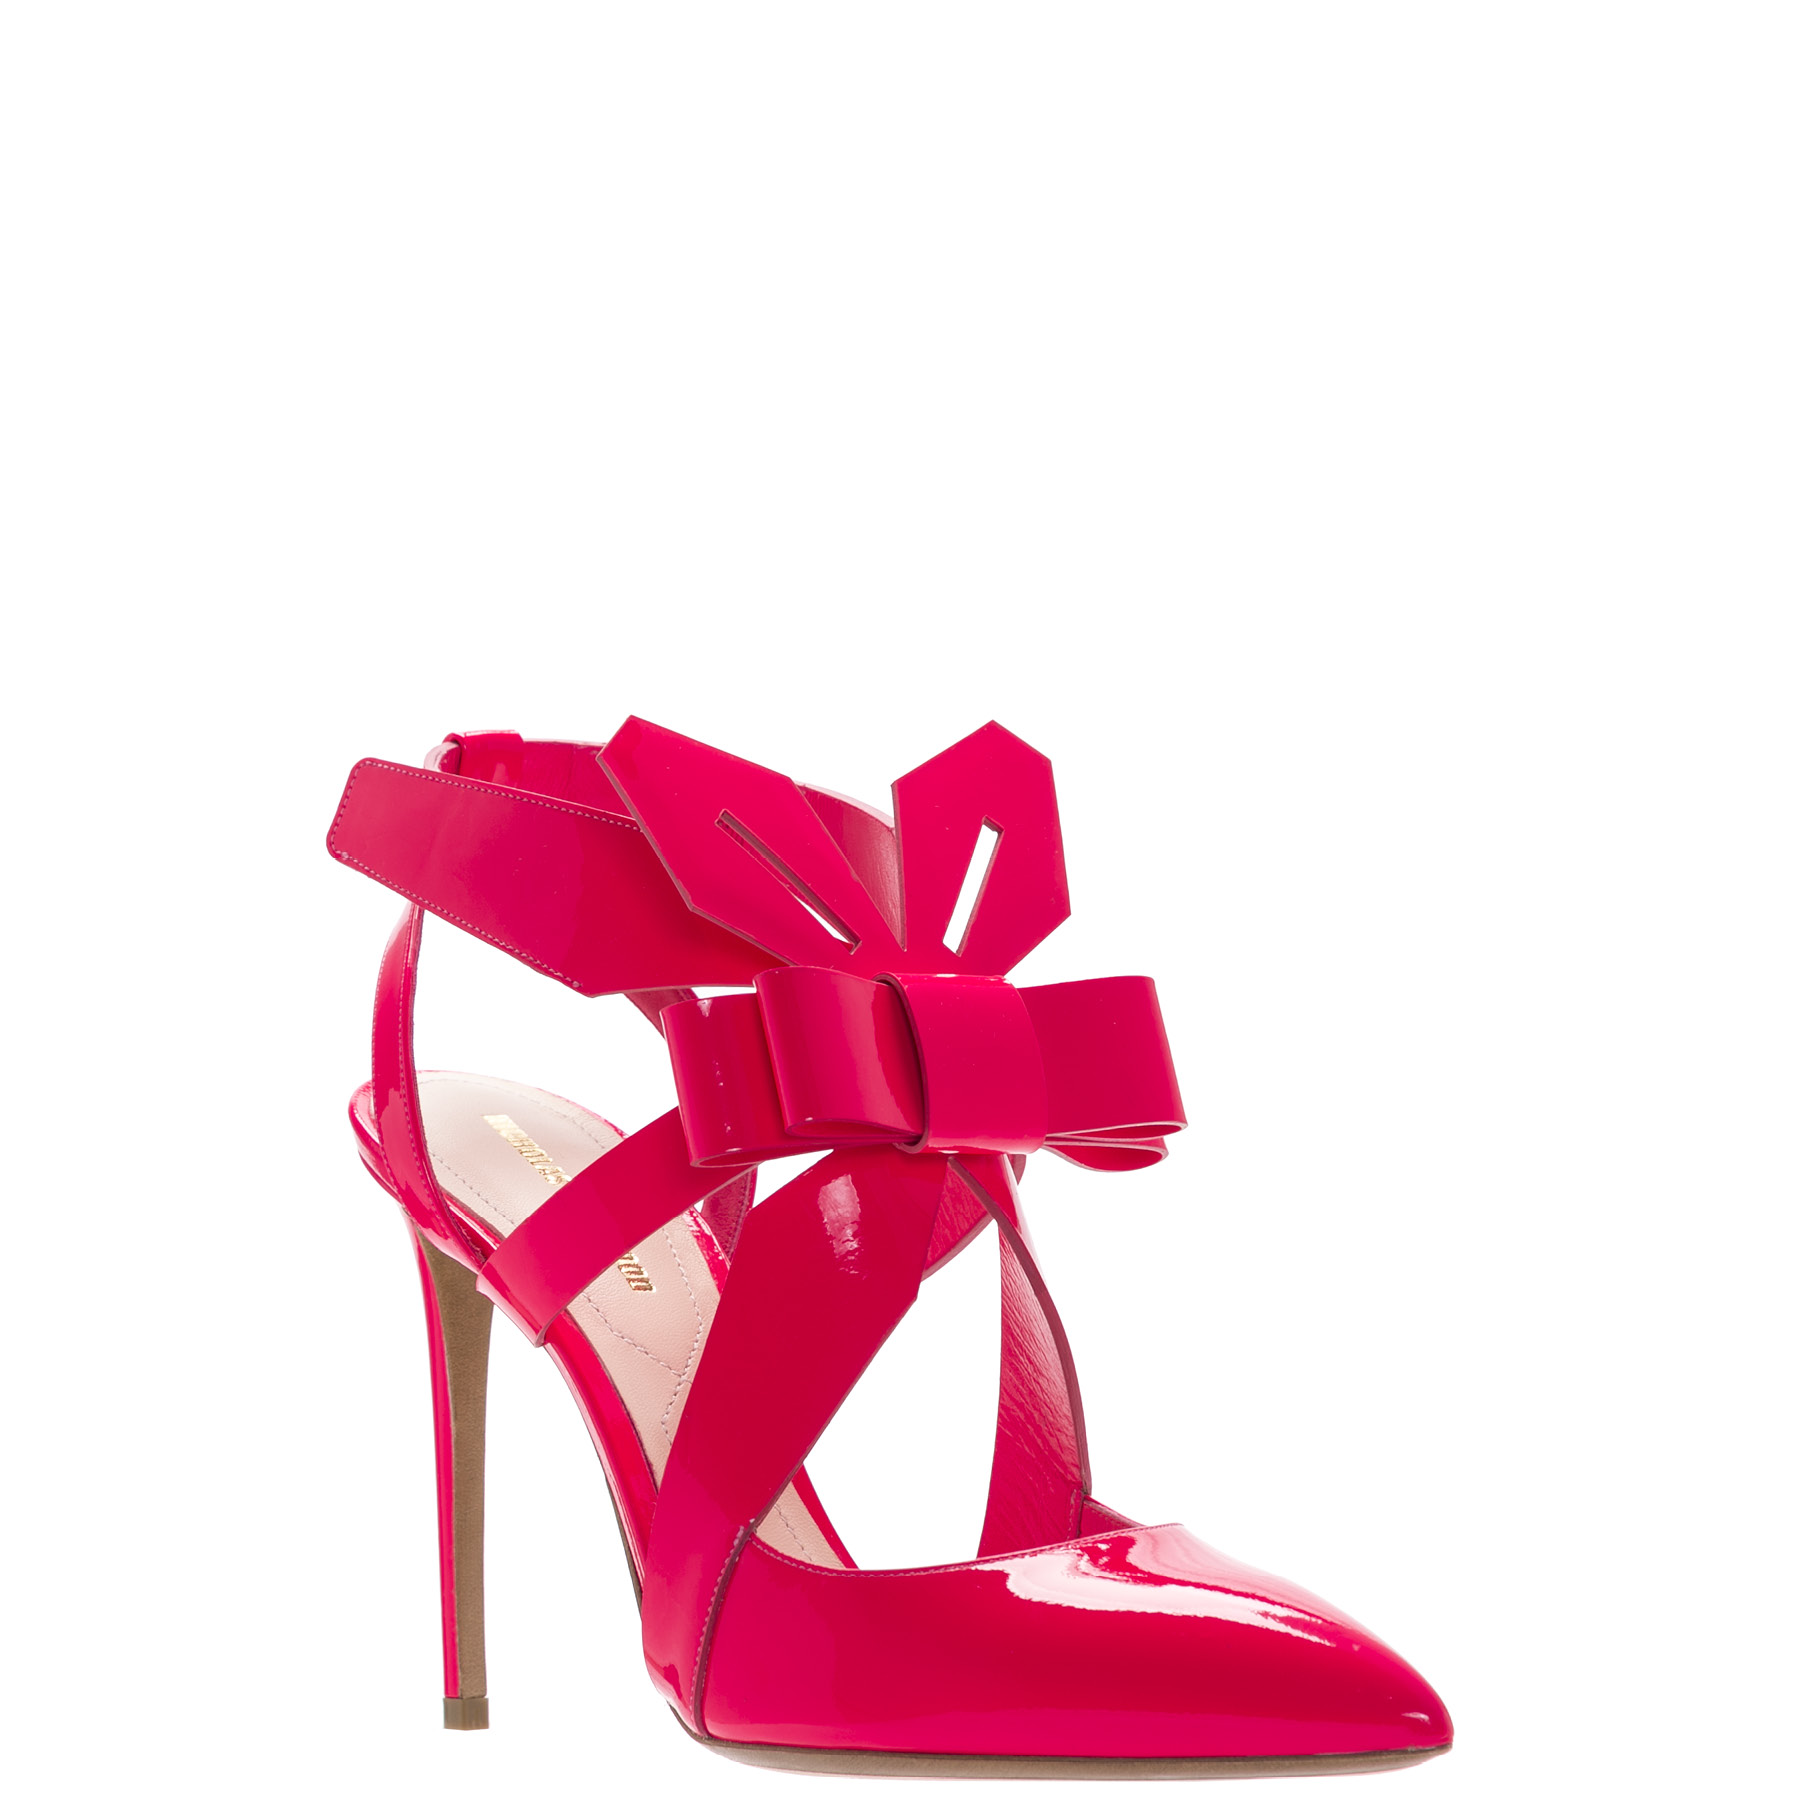 Nicholas-Kirkwood-Spring-Summer-2015-Bow-Stilettos-Sandals.jpeg